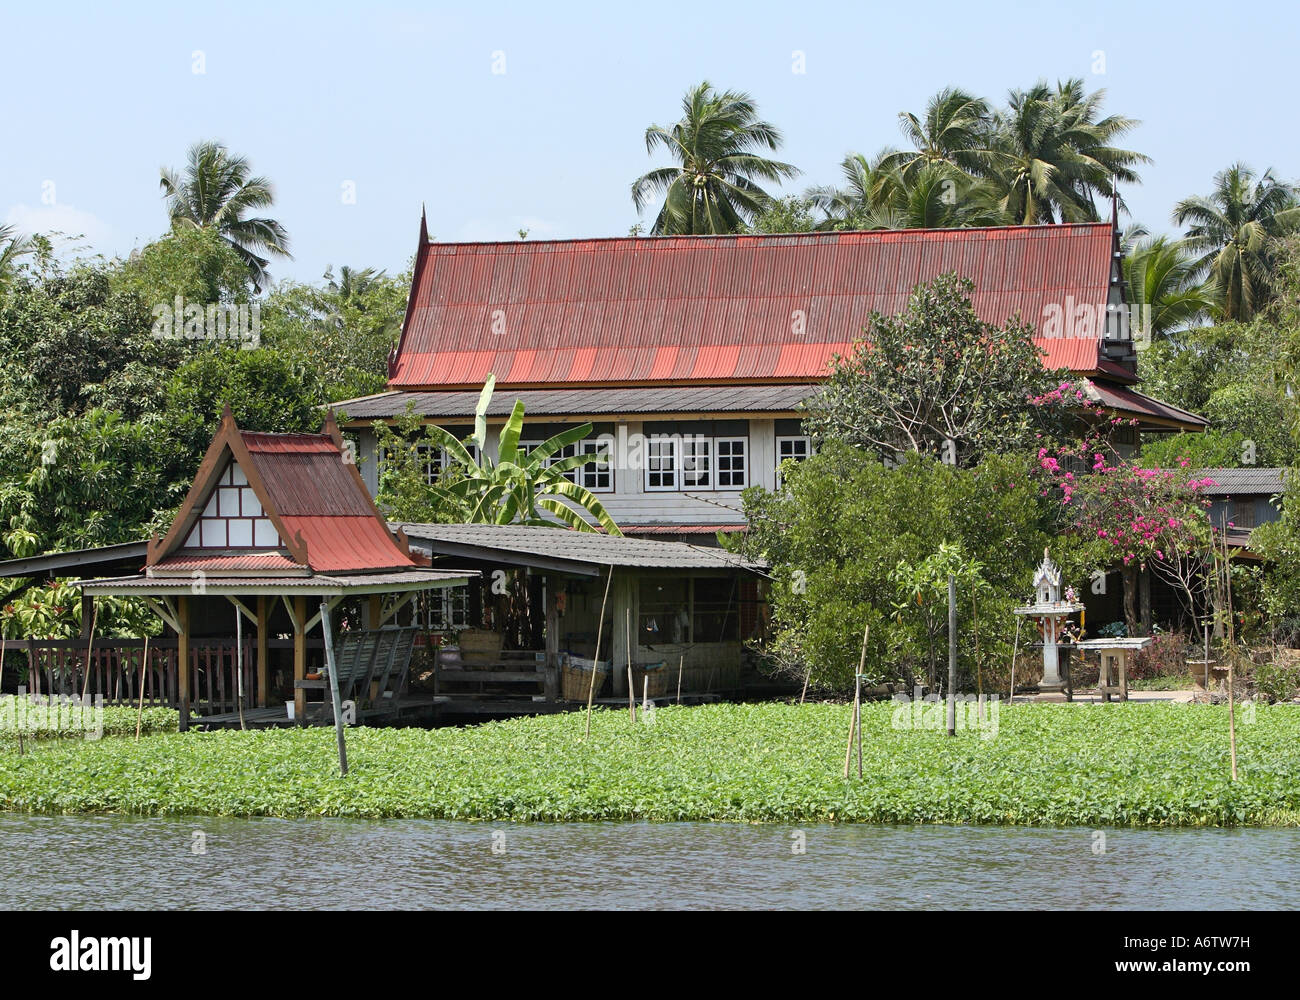 Wooden Thai specific tenement on the shore of the river Maenam Chao Phraya in Bangkok, Thailand, Asia - Stock Image